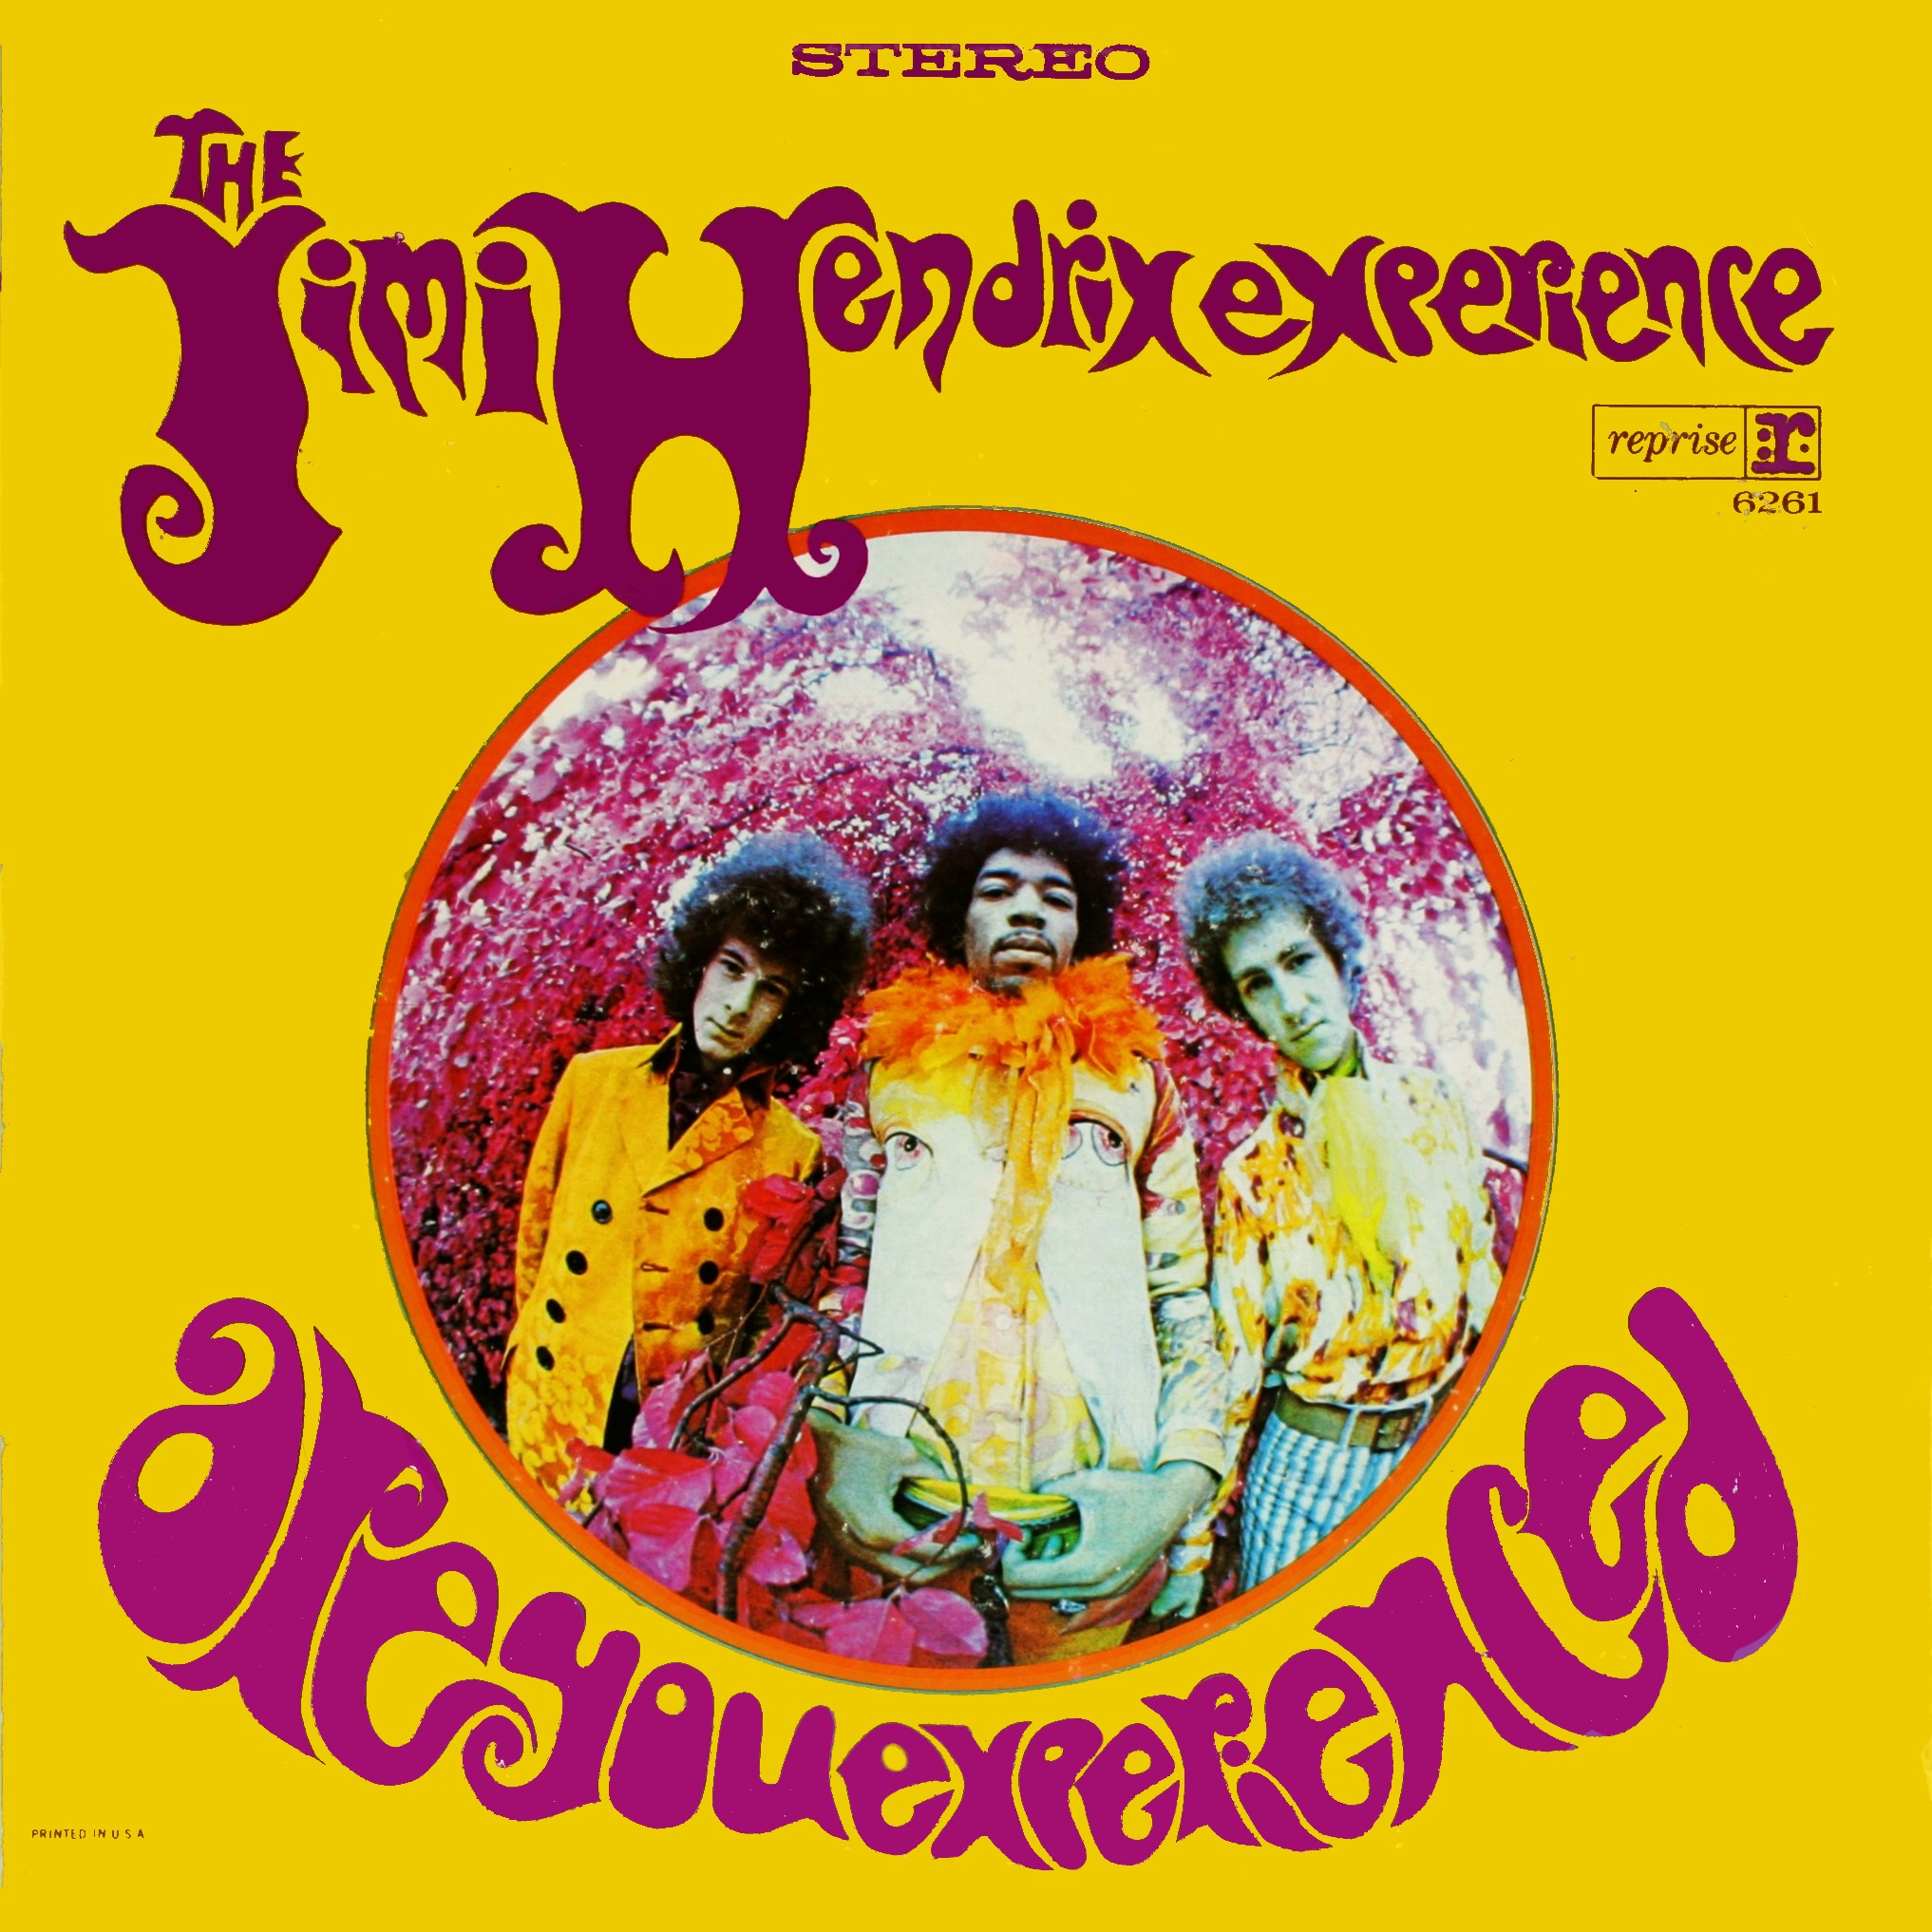 Are_You_Experienced_-_US_cover-edit.jpg